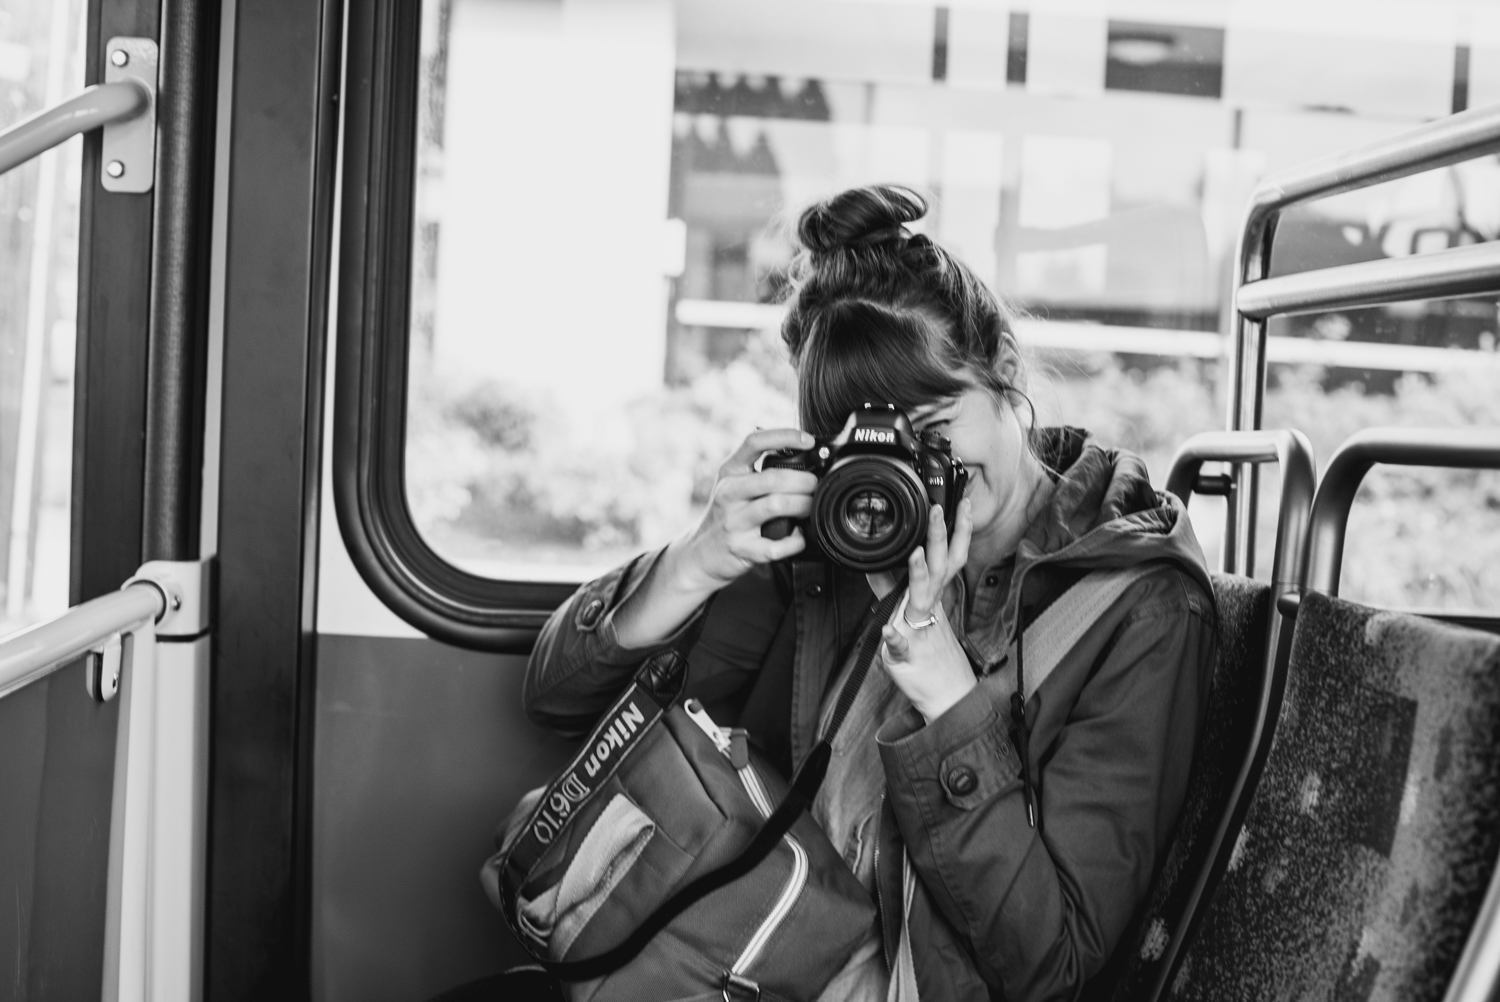 This is what I look like when I take photos on a bus. (Photo by Nathan Nichols)